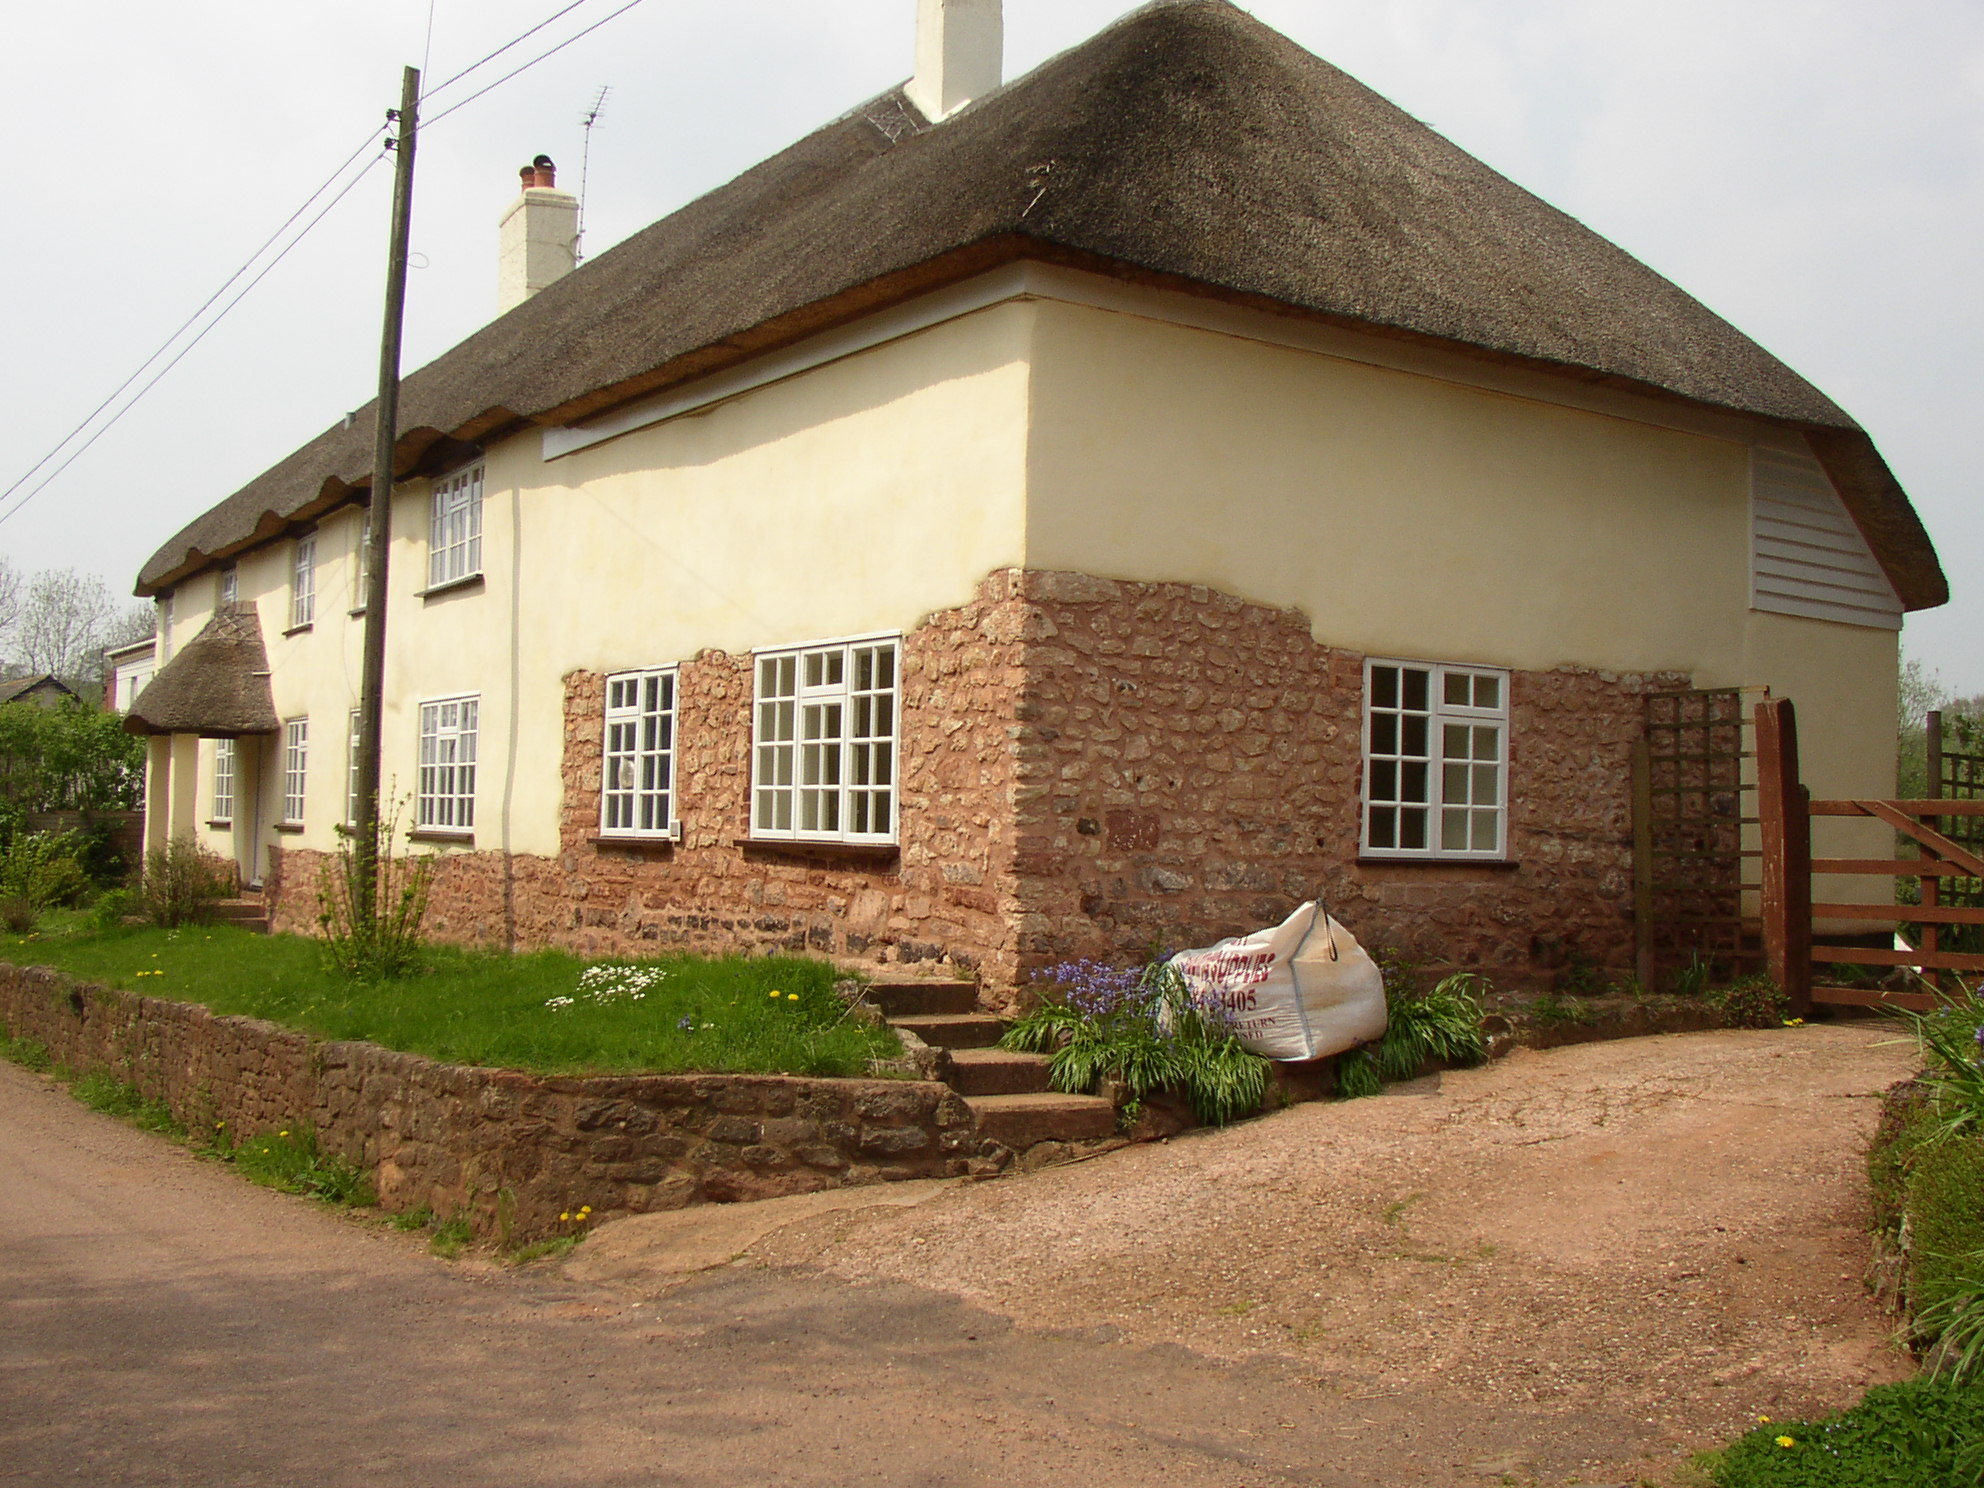 https://www.earthouses.co.uk/wp-content/uploads/2015/11/Specialism-Cob-repair.jpg